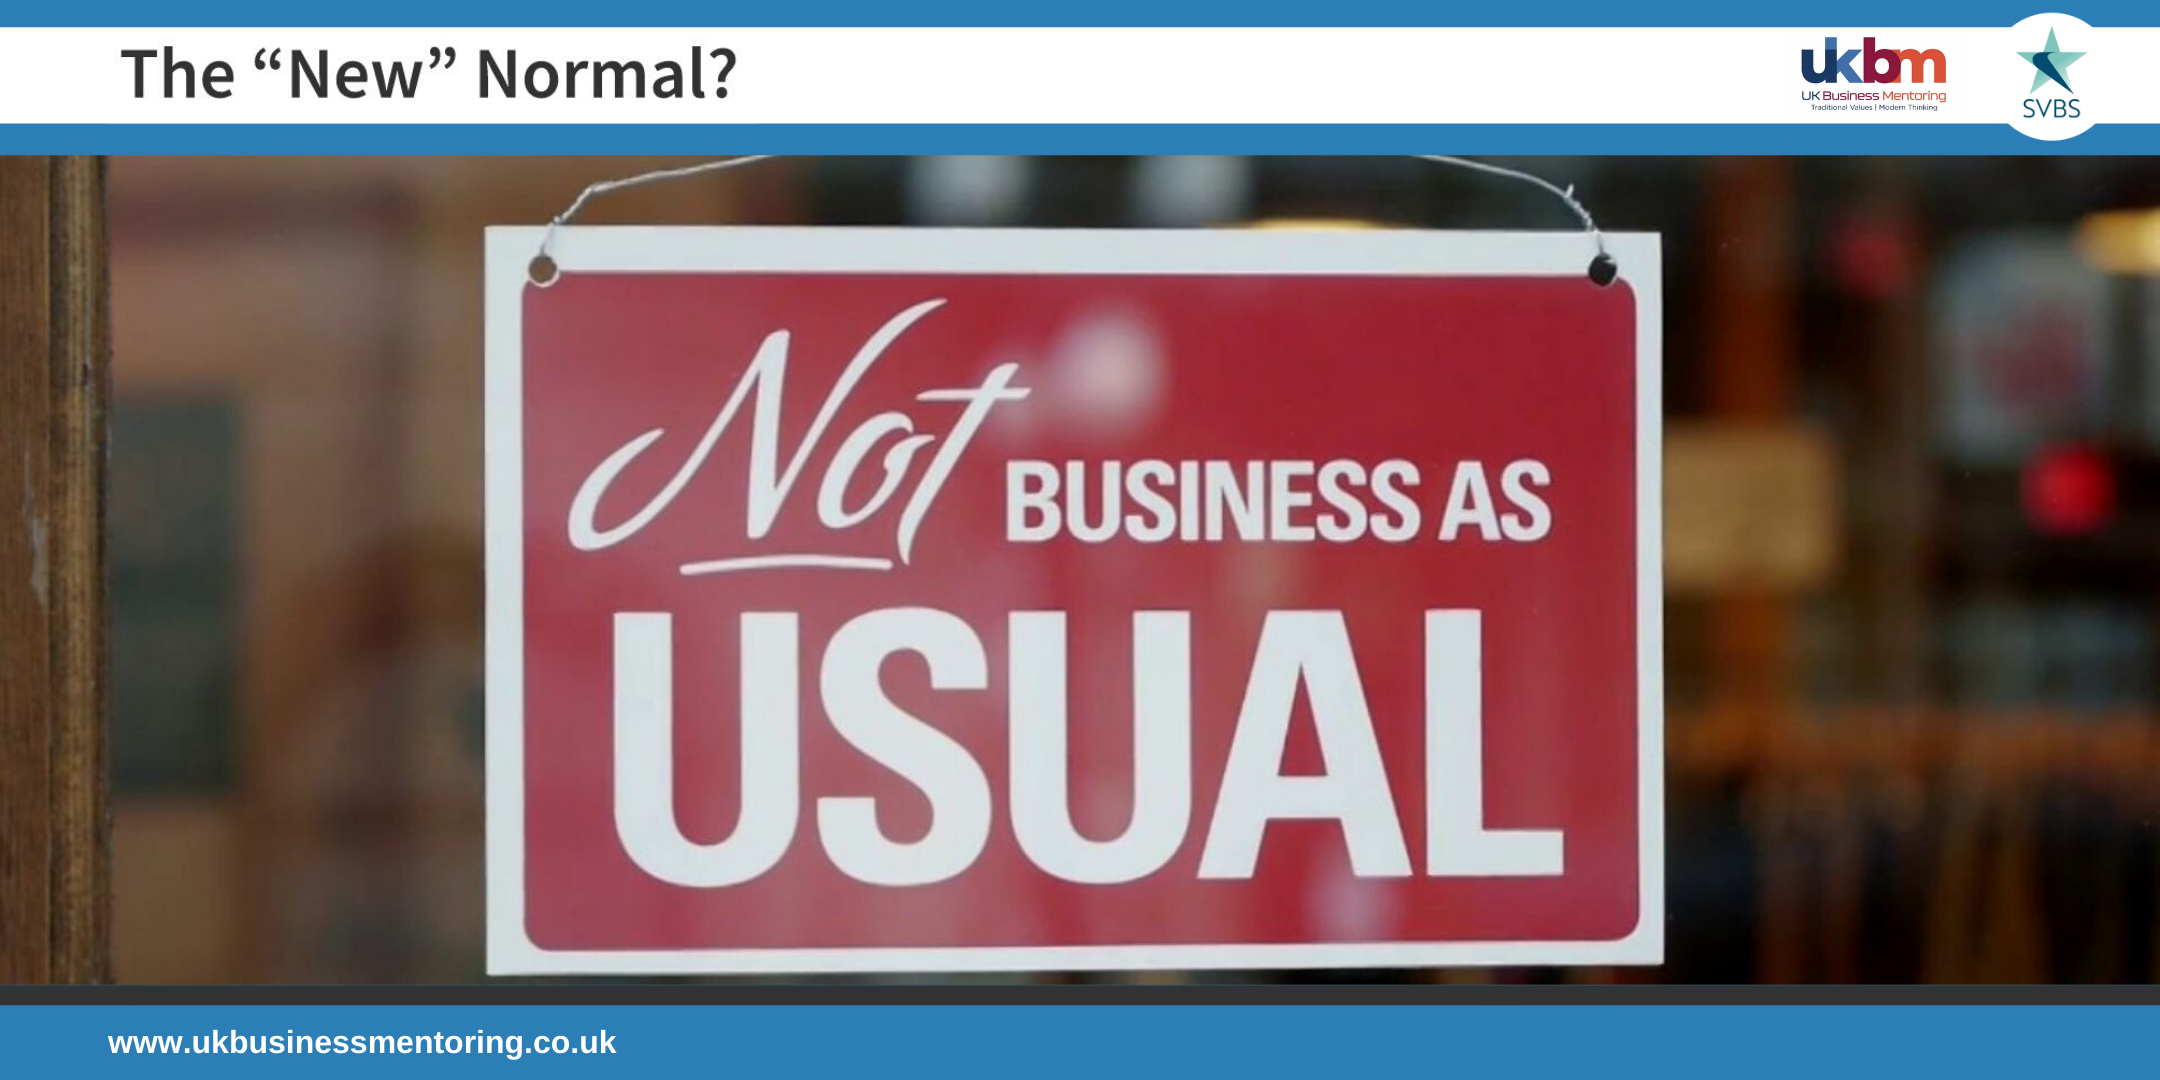 As businesses start to re-open, what will the 'New Normal' be?